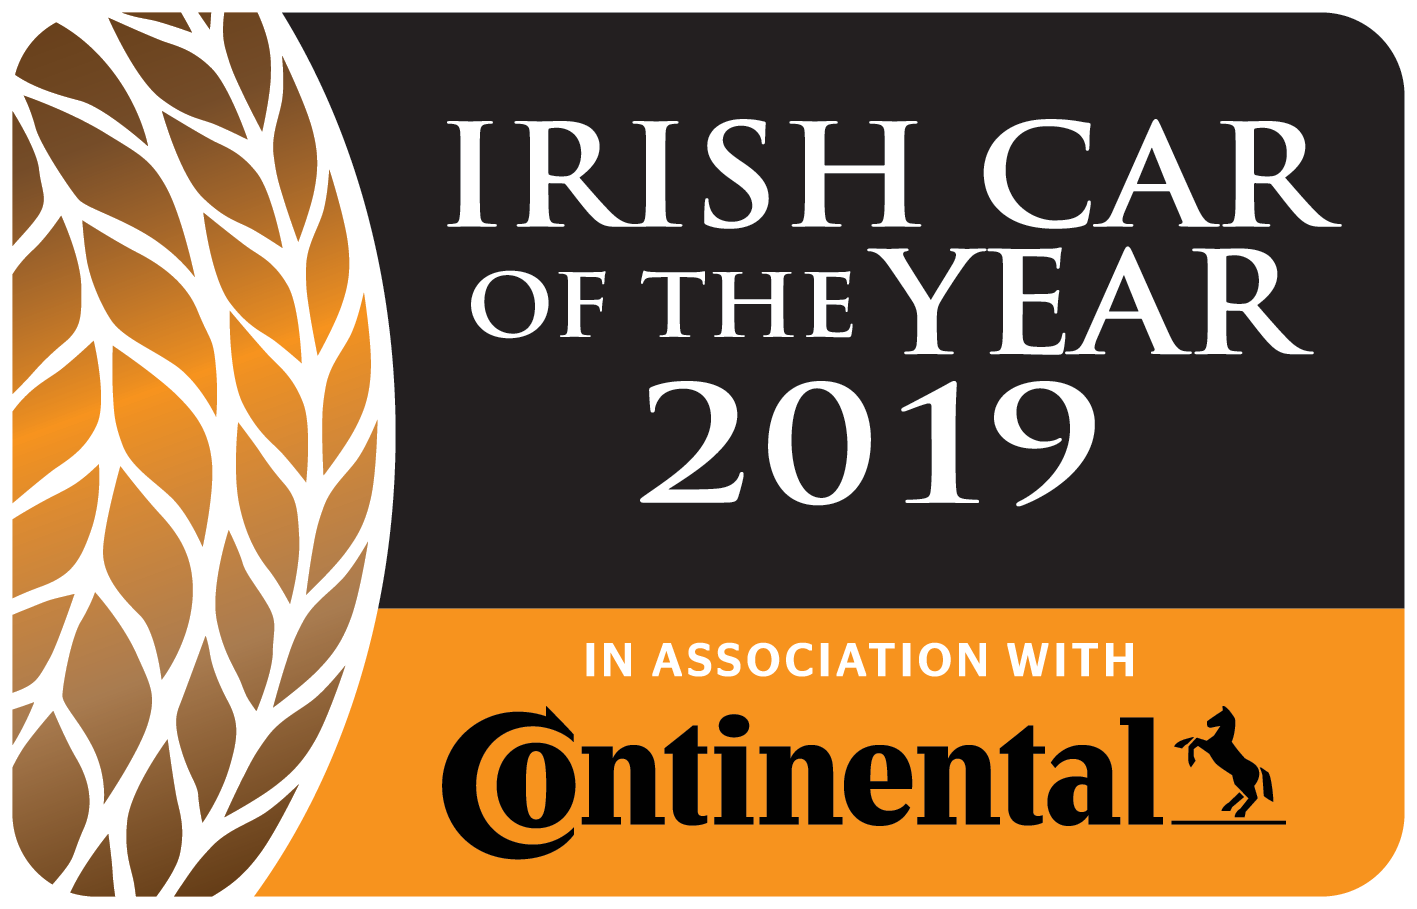 Irish Car of the Year 2019 in association with Continental